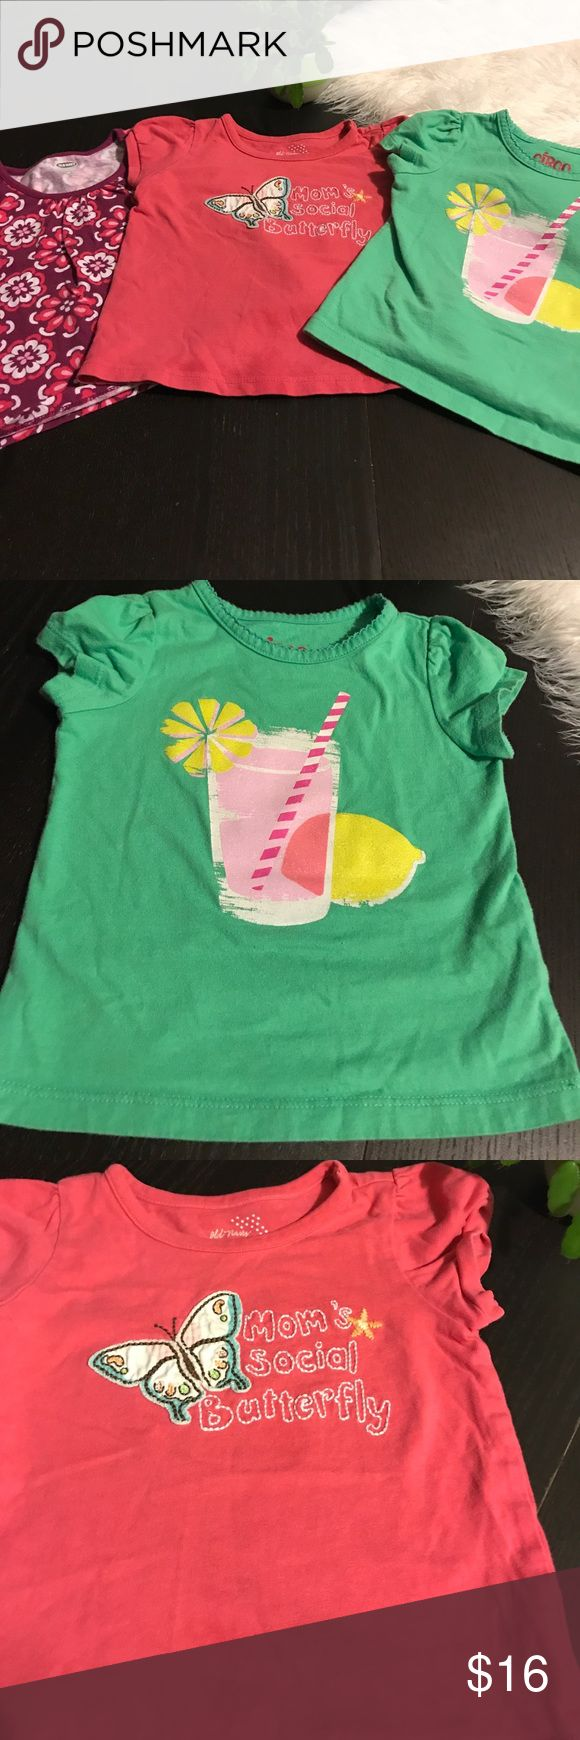 Lot of 18 Month Girl Tees All EUC. No stains or holes. Good to have for jeans, skirts or shorts. Pink shirts are Old Navy 18-24 Month. Green is Circo 18 Month. Old Navy Shirts & Tops Tees - Short Sleeve